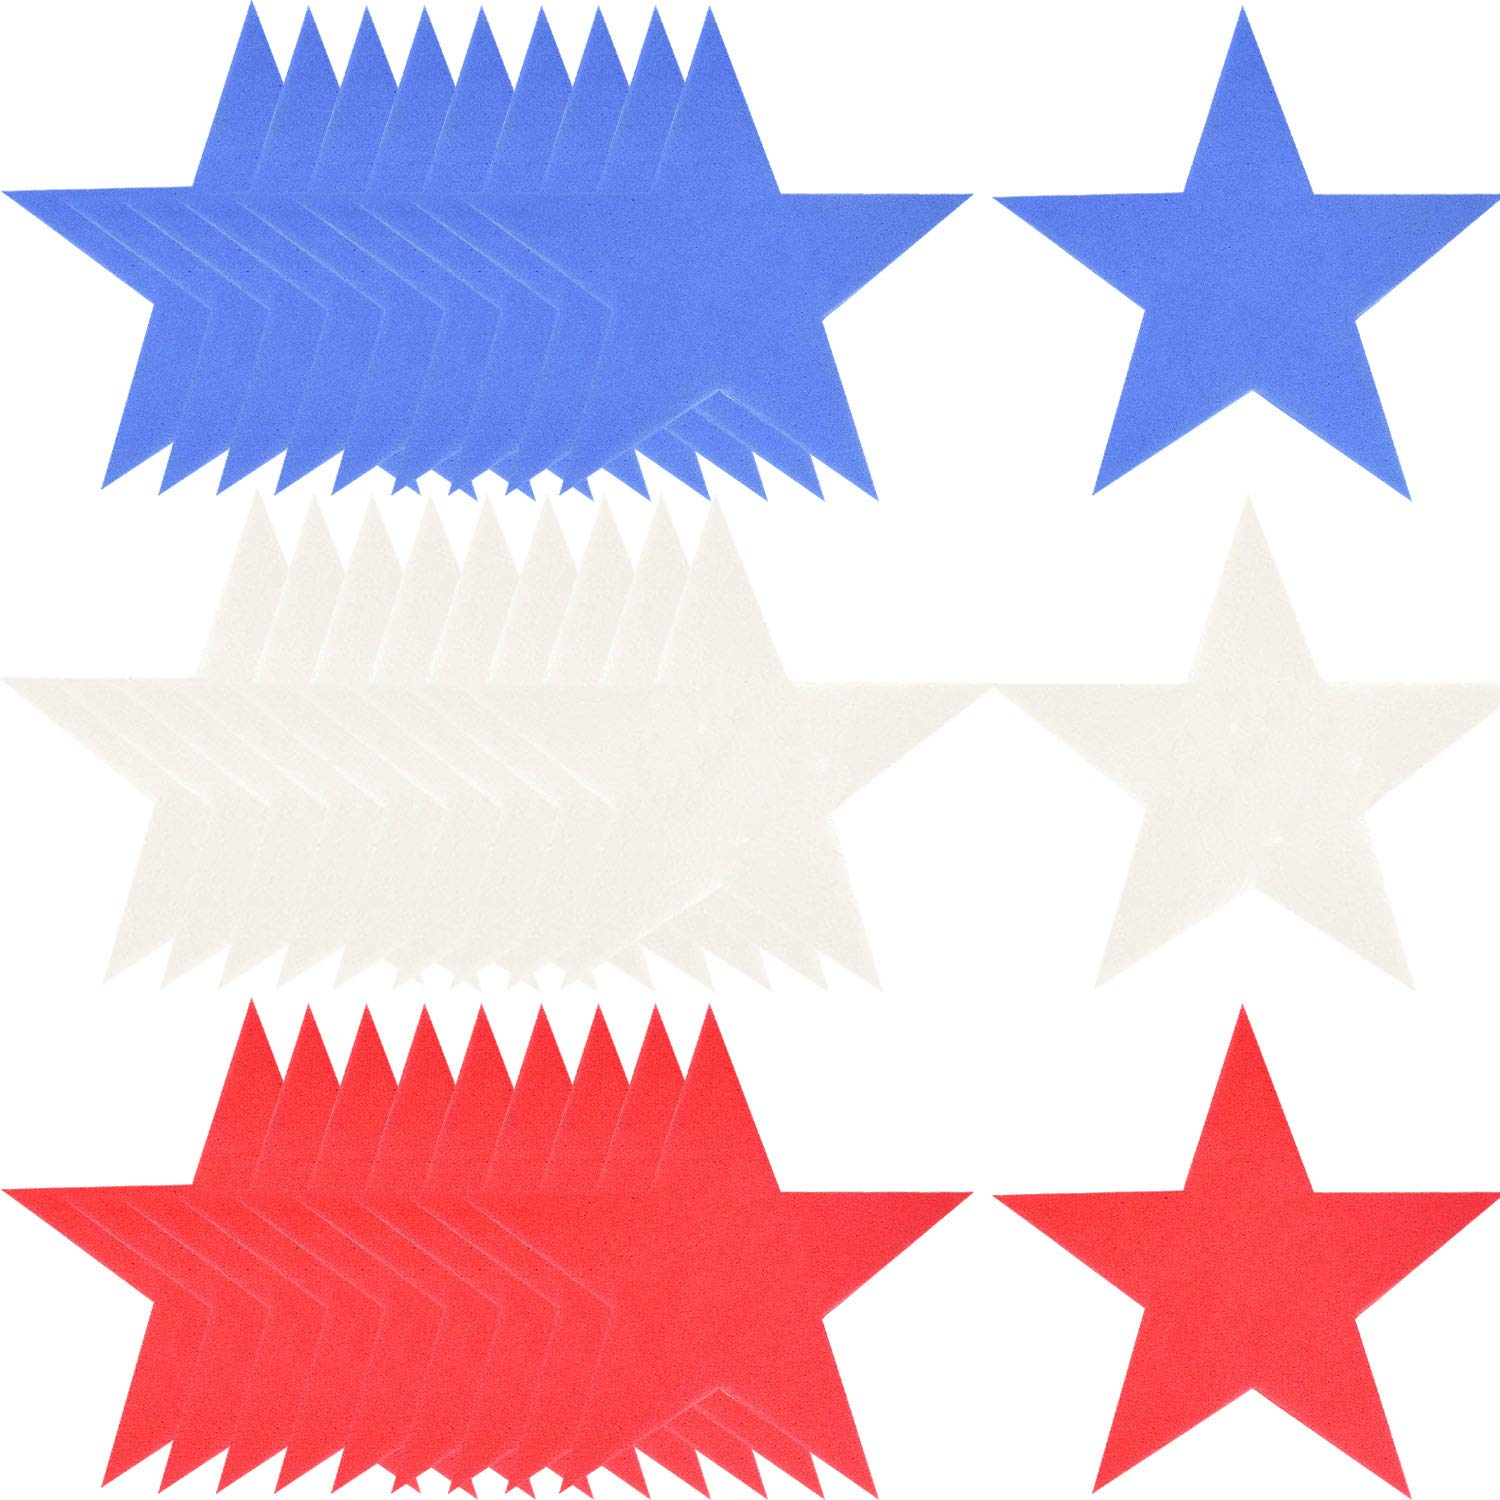 Mayam 48 Pieces Patriotic Foam Star Craft Foam Star Red, White, and Blue Foam Stars for 4th of July Independence Day Decoration